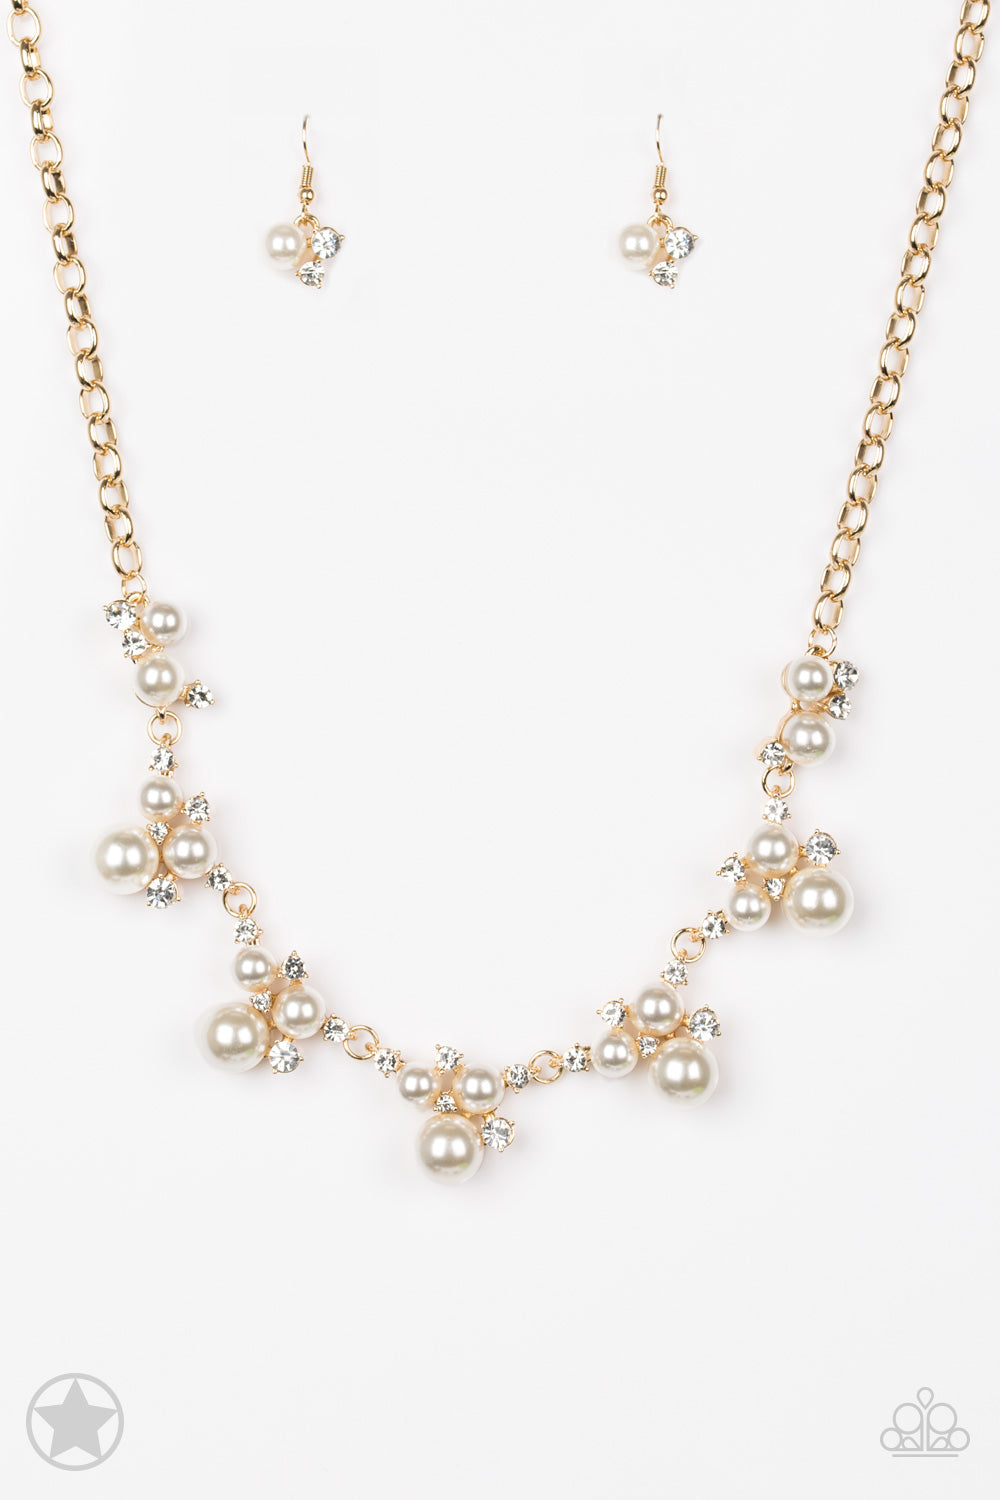 Paparazzi Accessories Toast to Perfection - Gold Necklace Blockbuster - Be Adored Jewelry